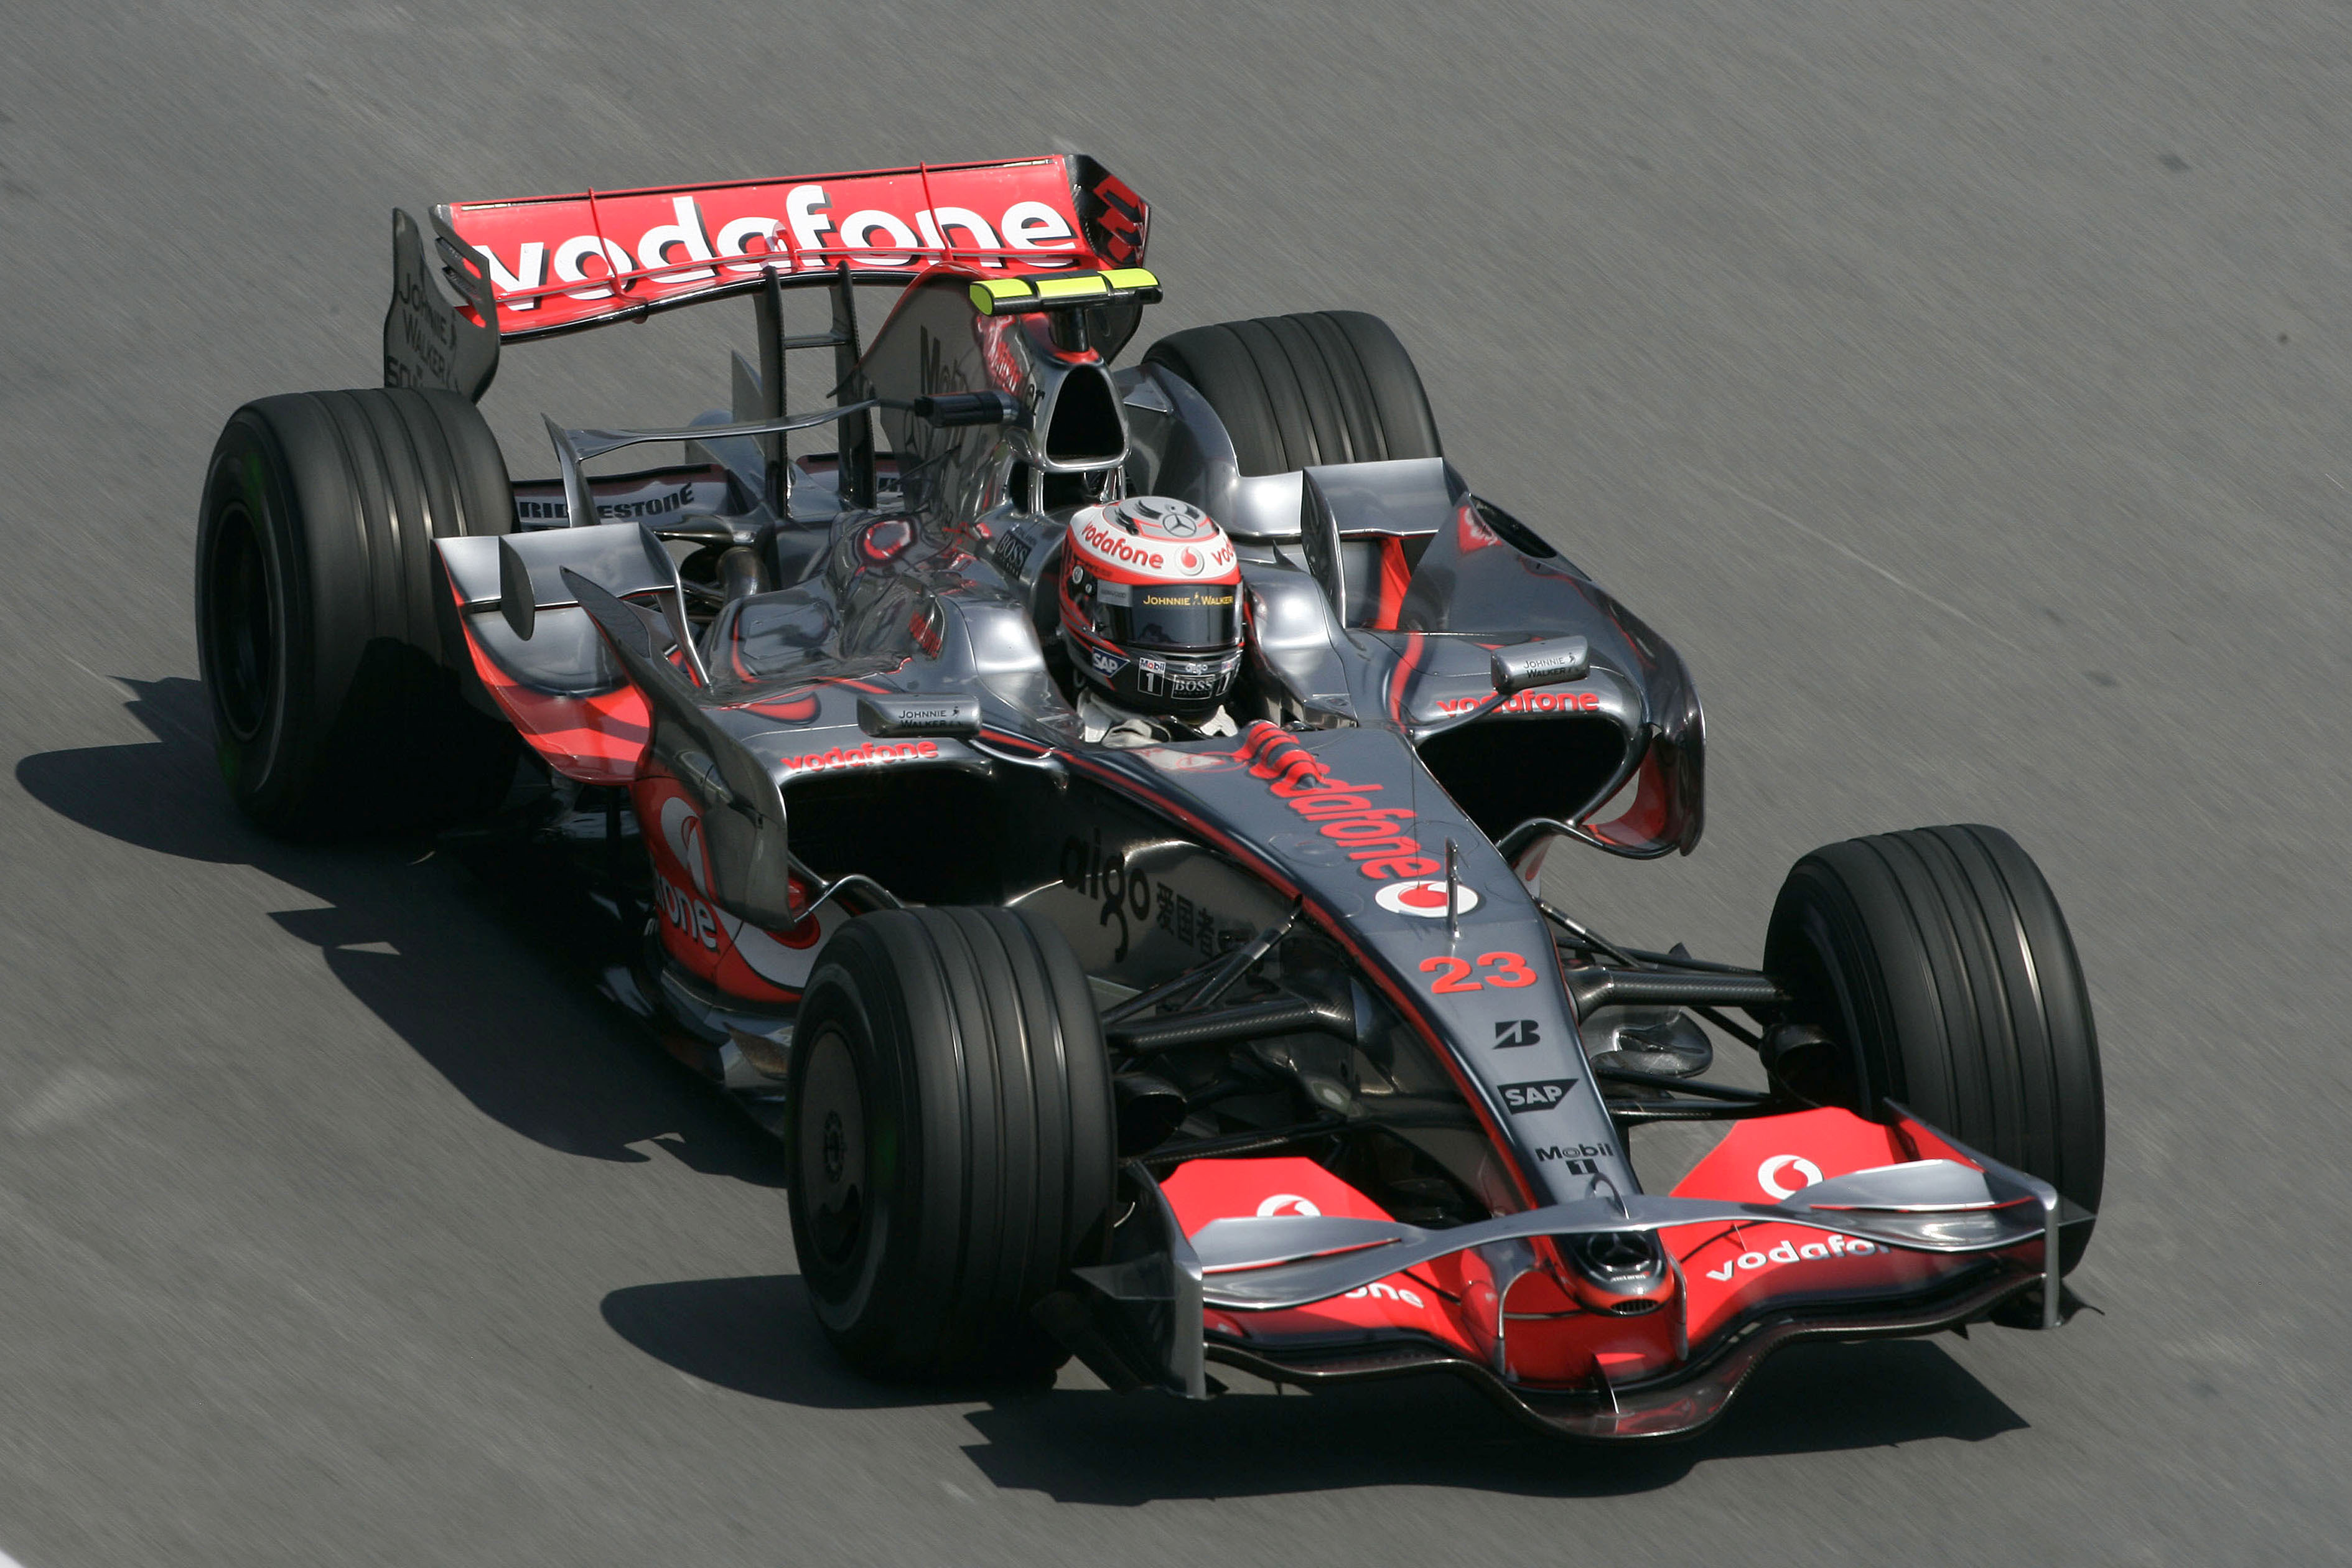 F1: F1 Montreal, Qualifying: Pole Position For Lewis Hamilton